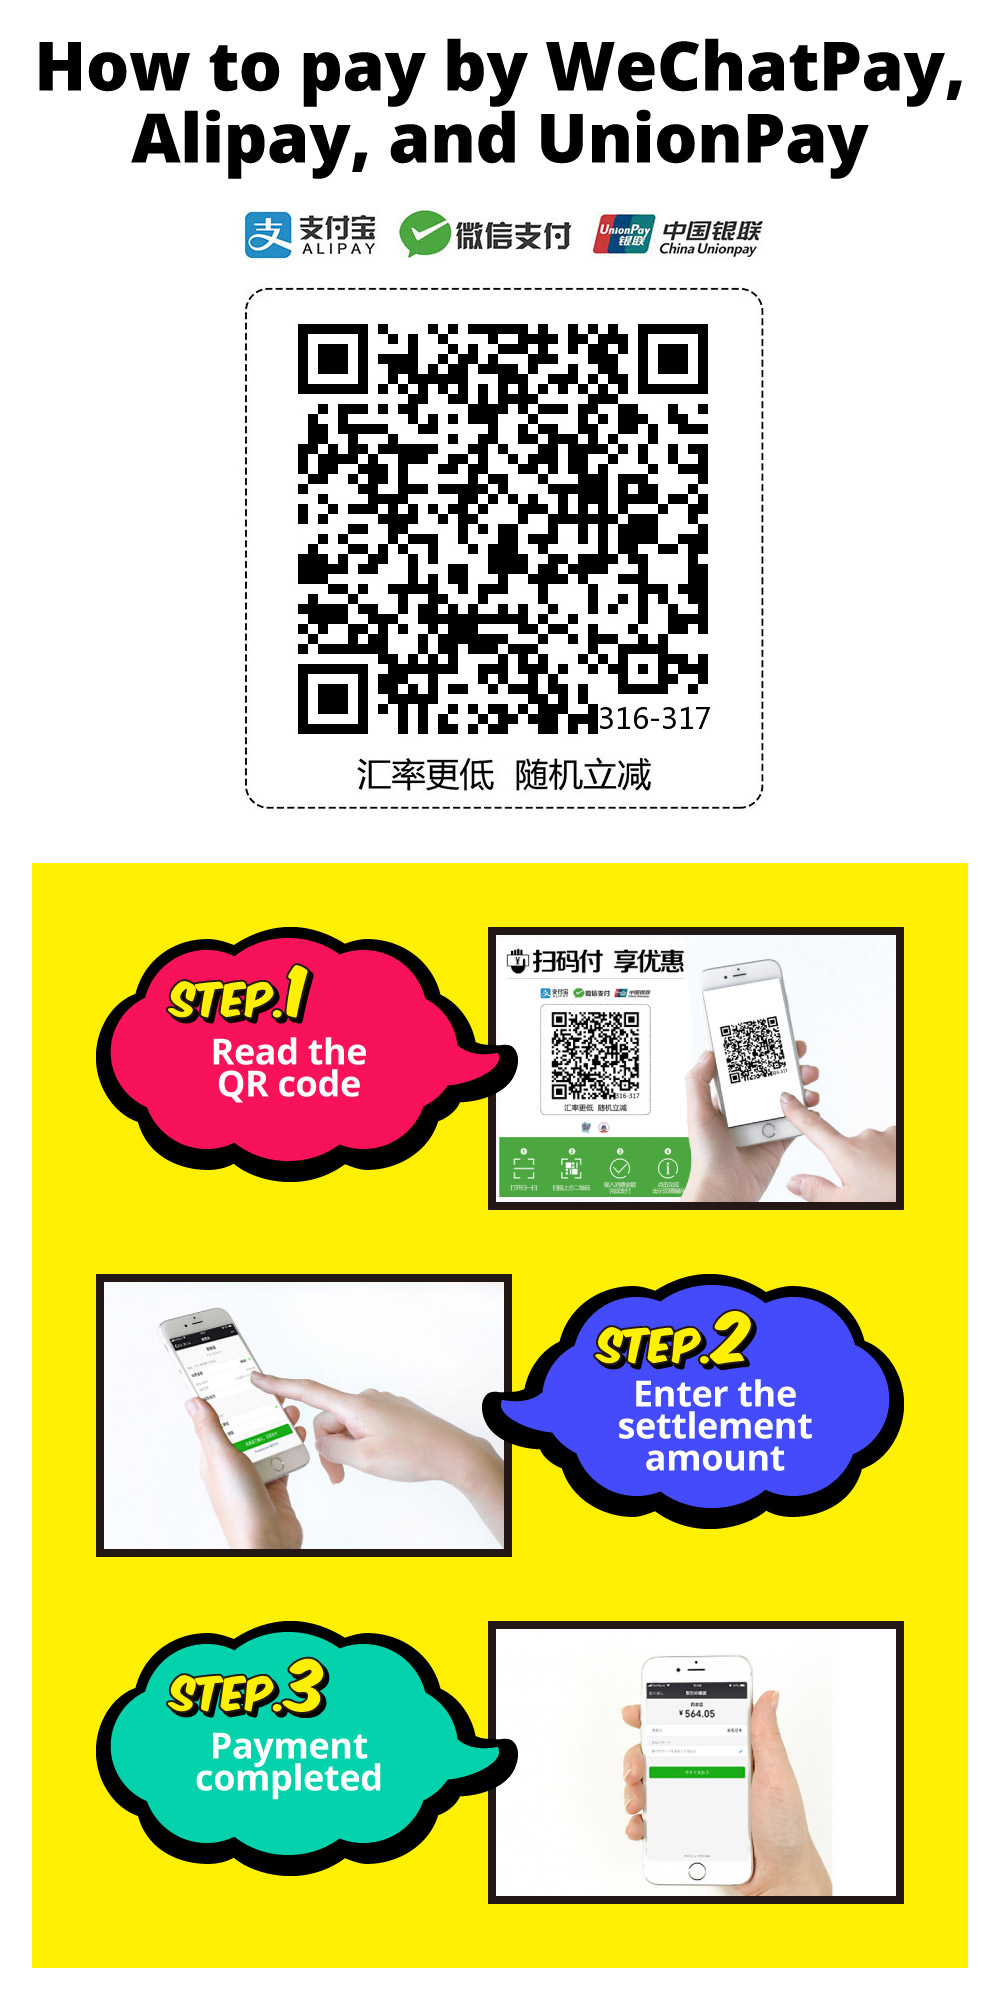 HOW TO E-PAYMENTS